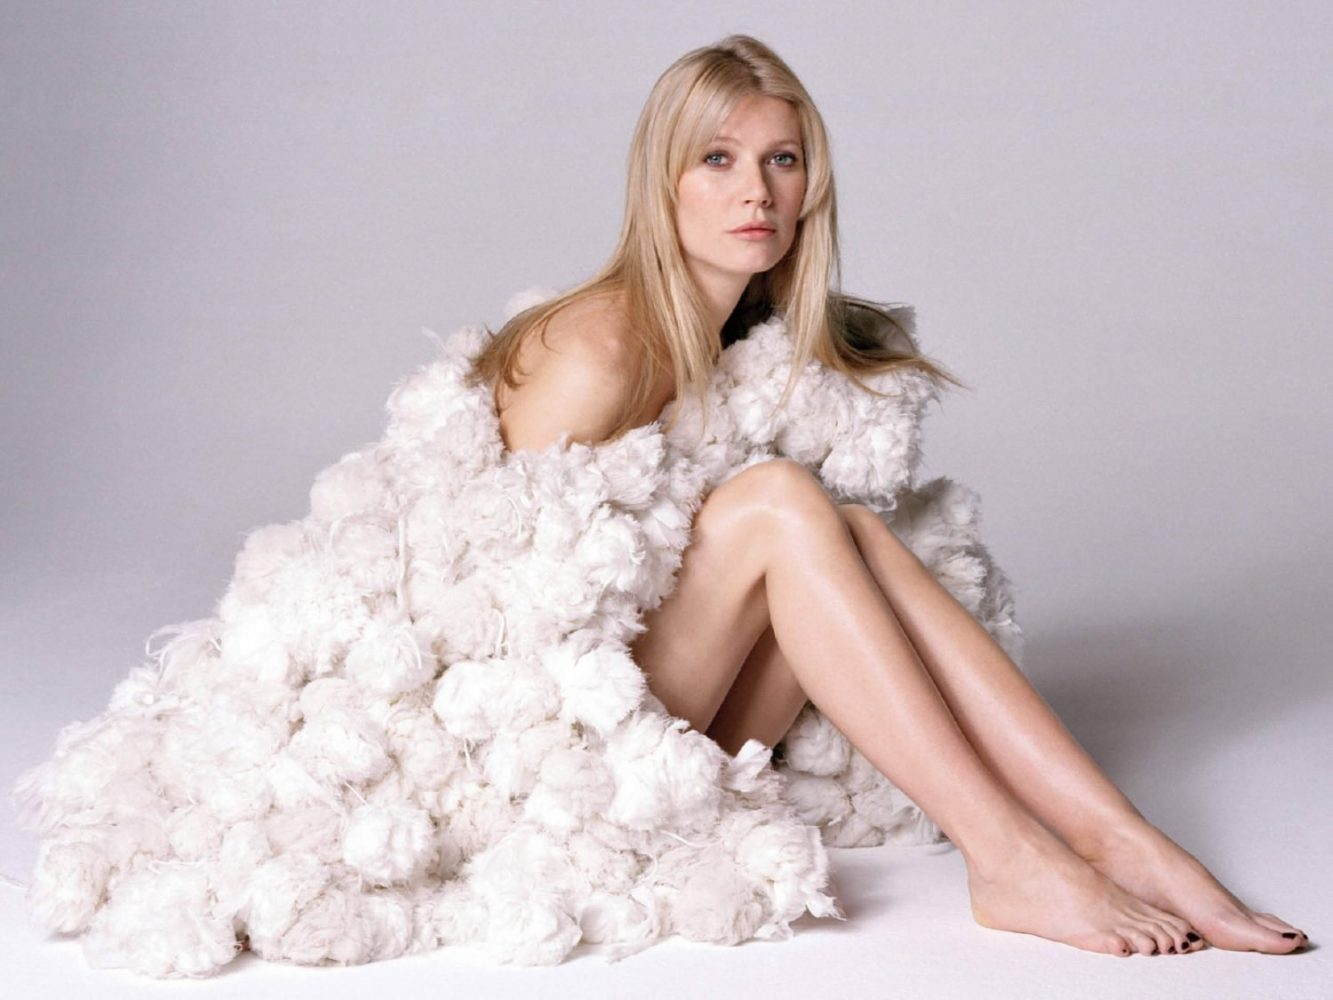 Gwyneth Paltrow Nude Pictures